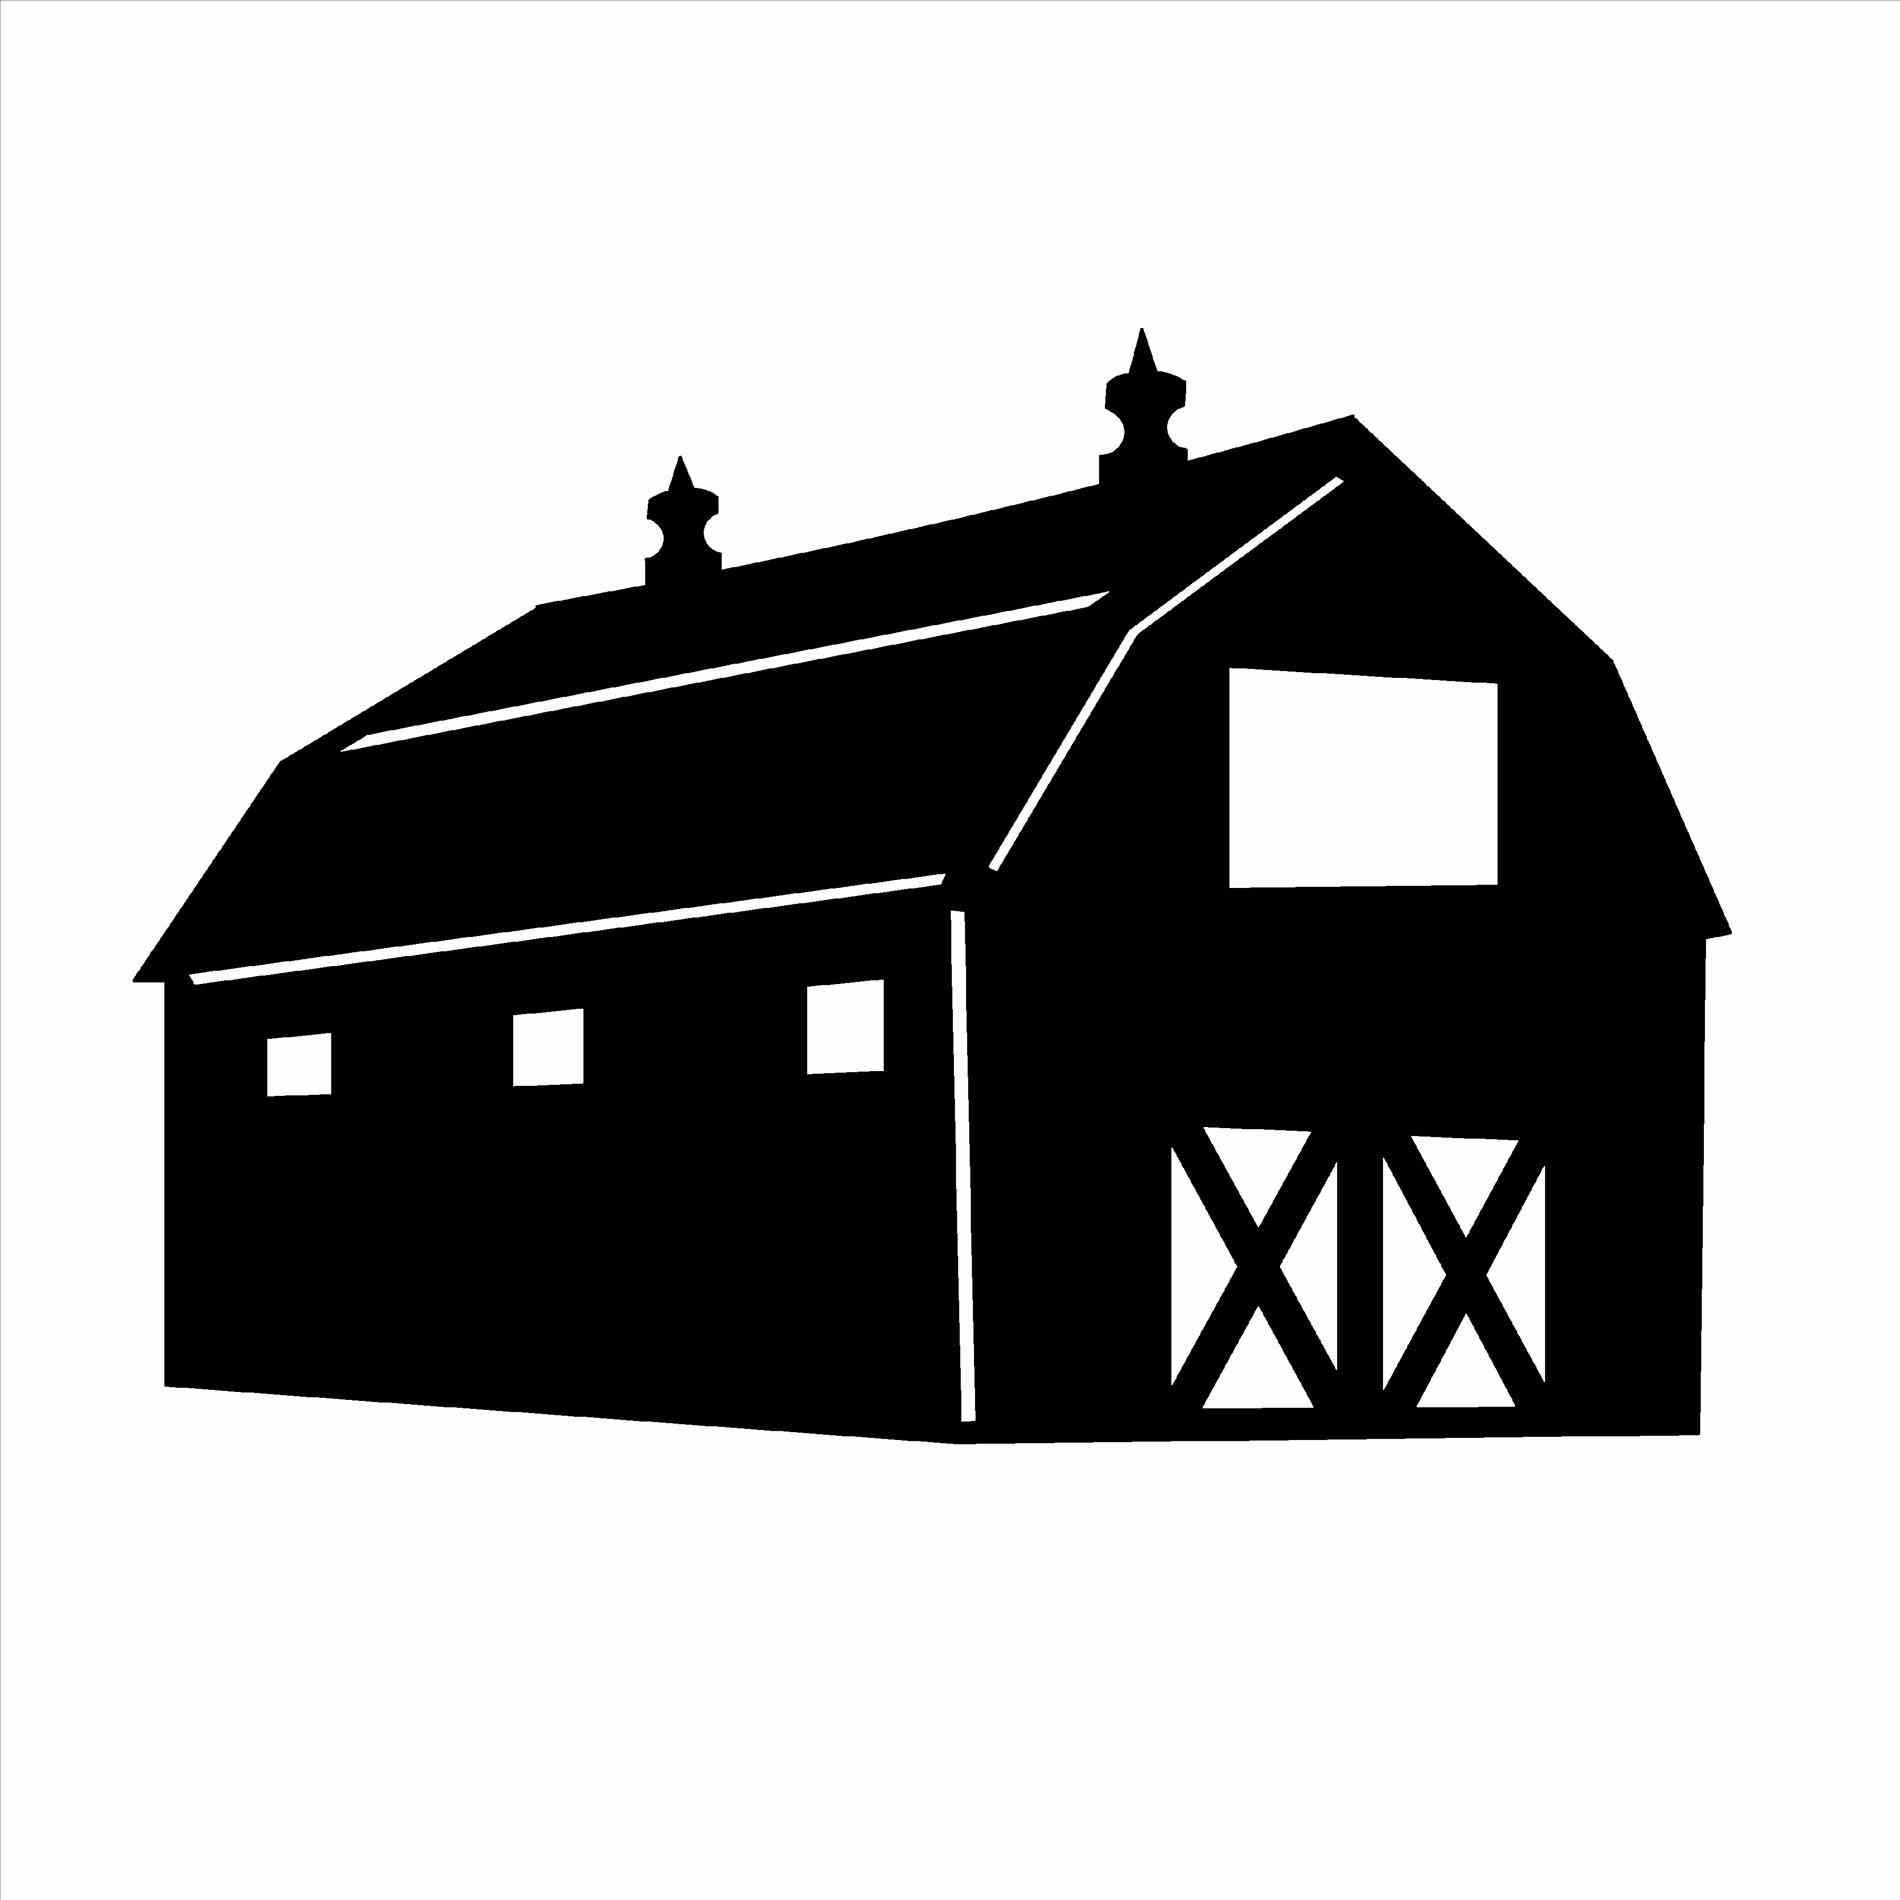 Farmhouse clipart farm shed. Image result for barn